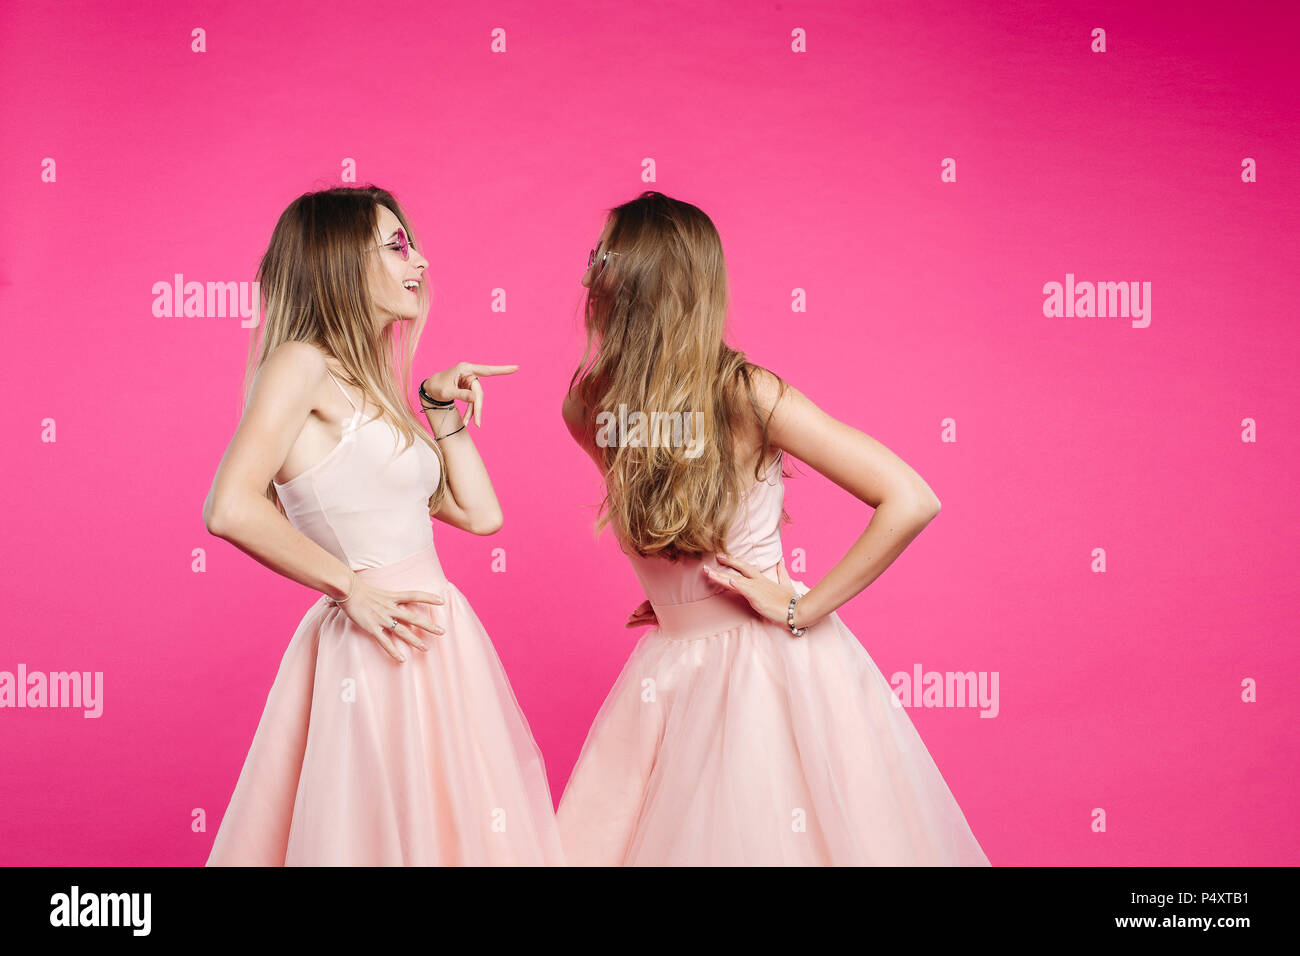 Quarrel of two sisters in pink dresses. - Stock Image